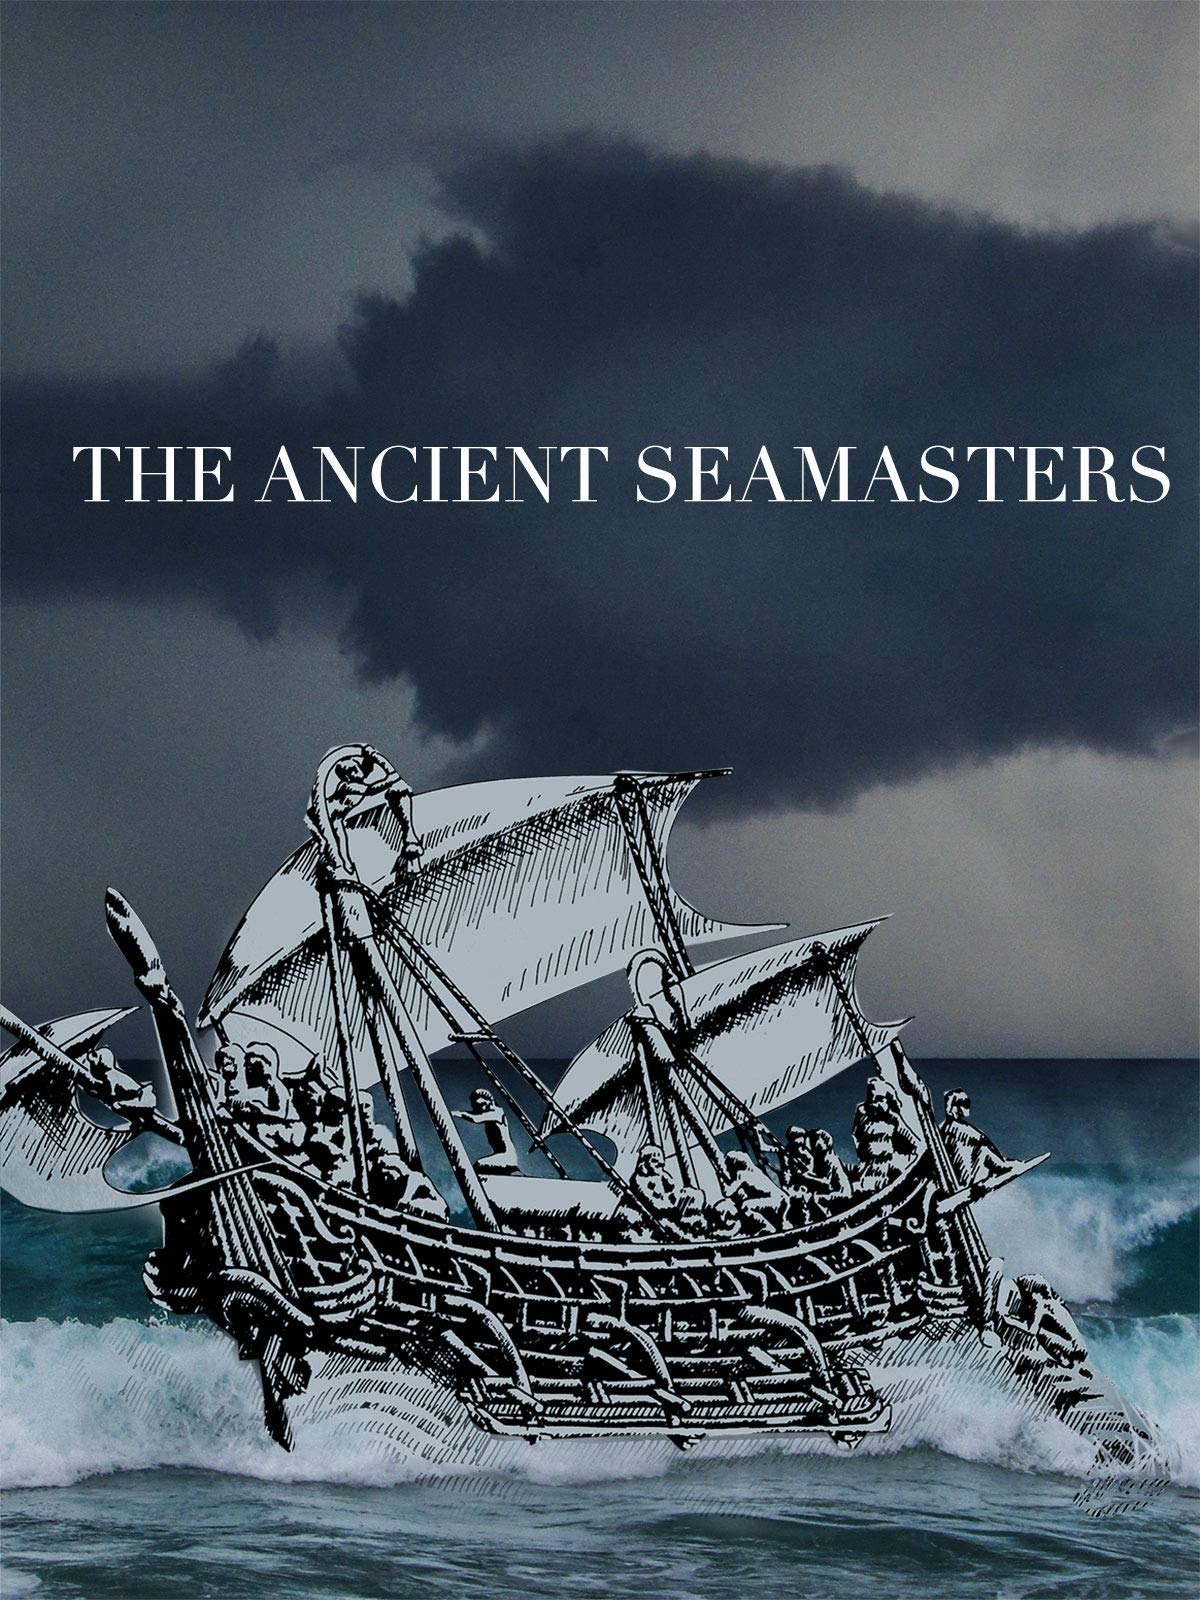 The Ancient Seamasters